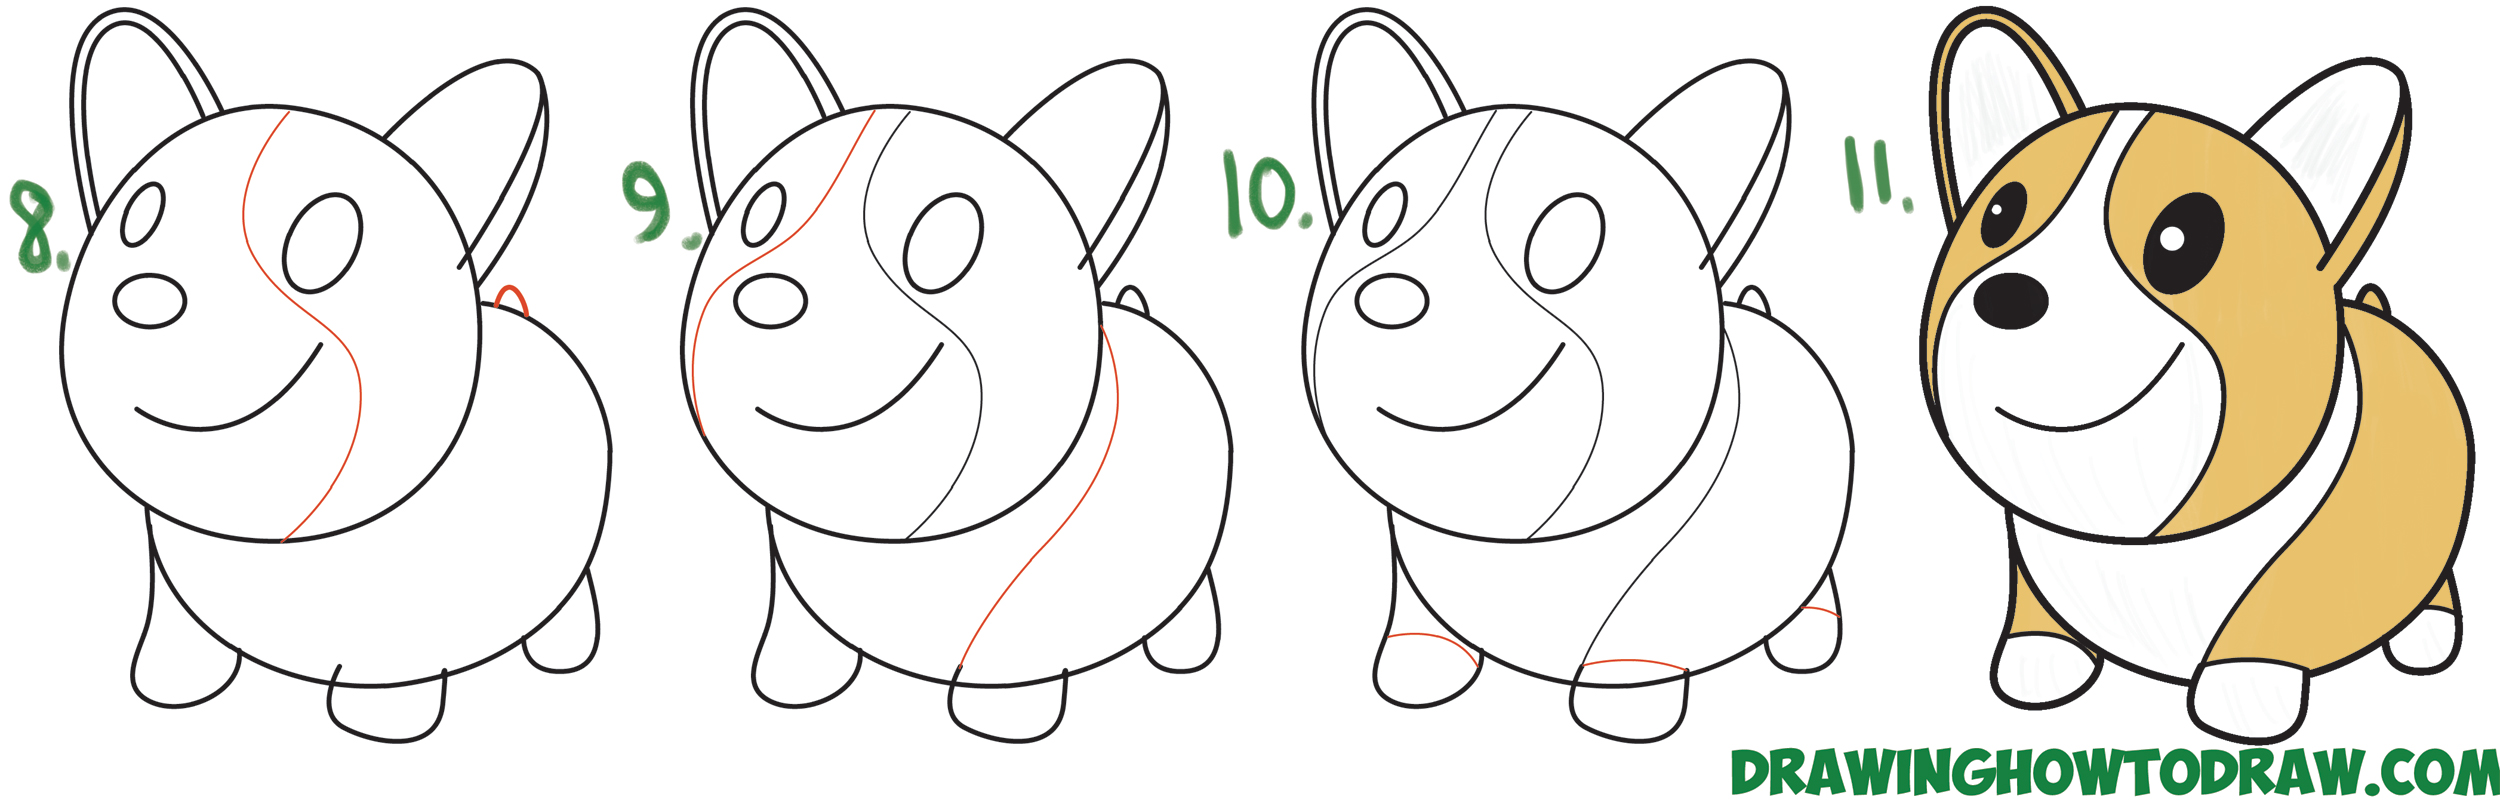 How to Draw a Cute Corgi (Cartoon / Kawaii / Chibi) Easy